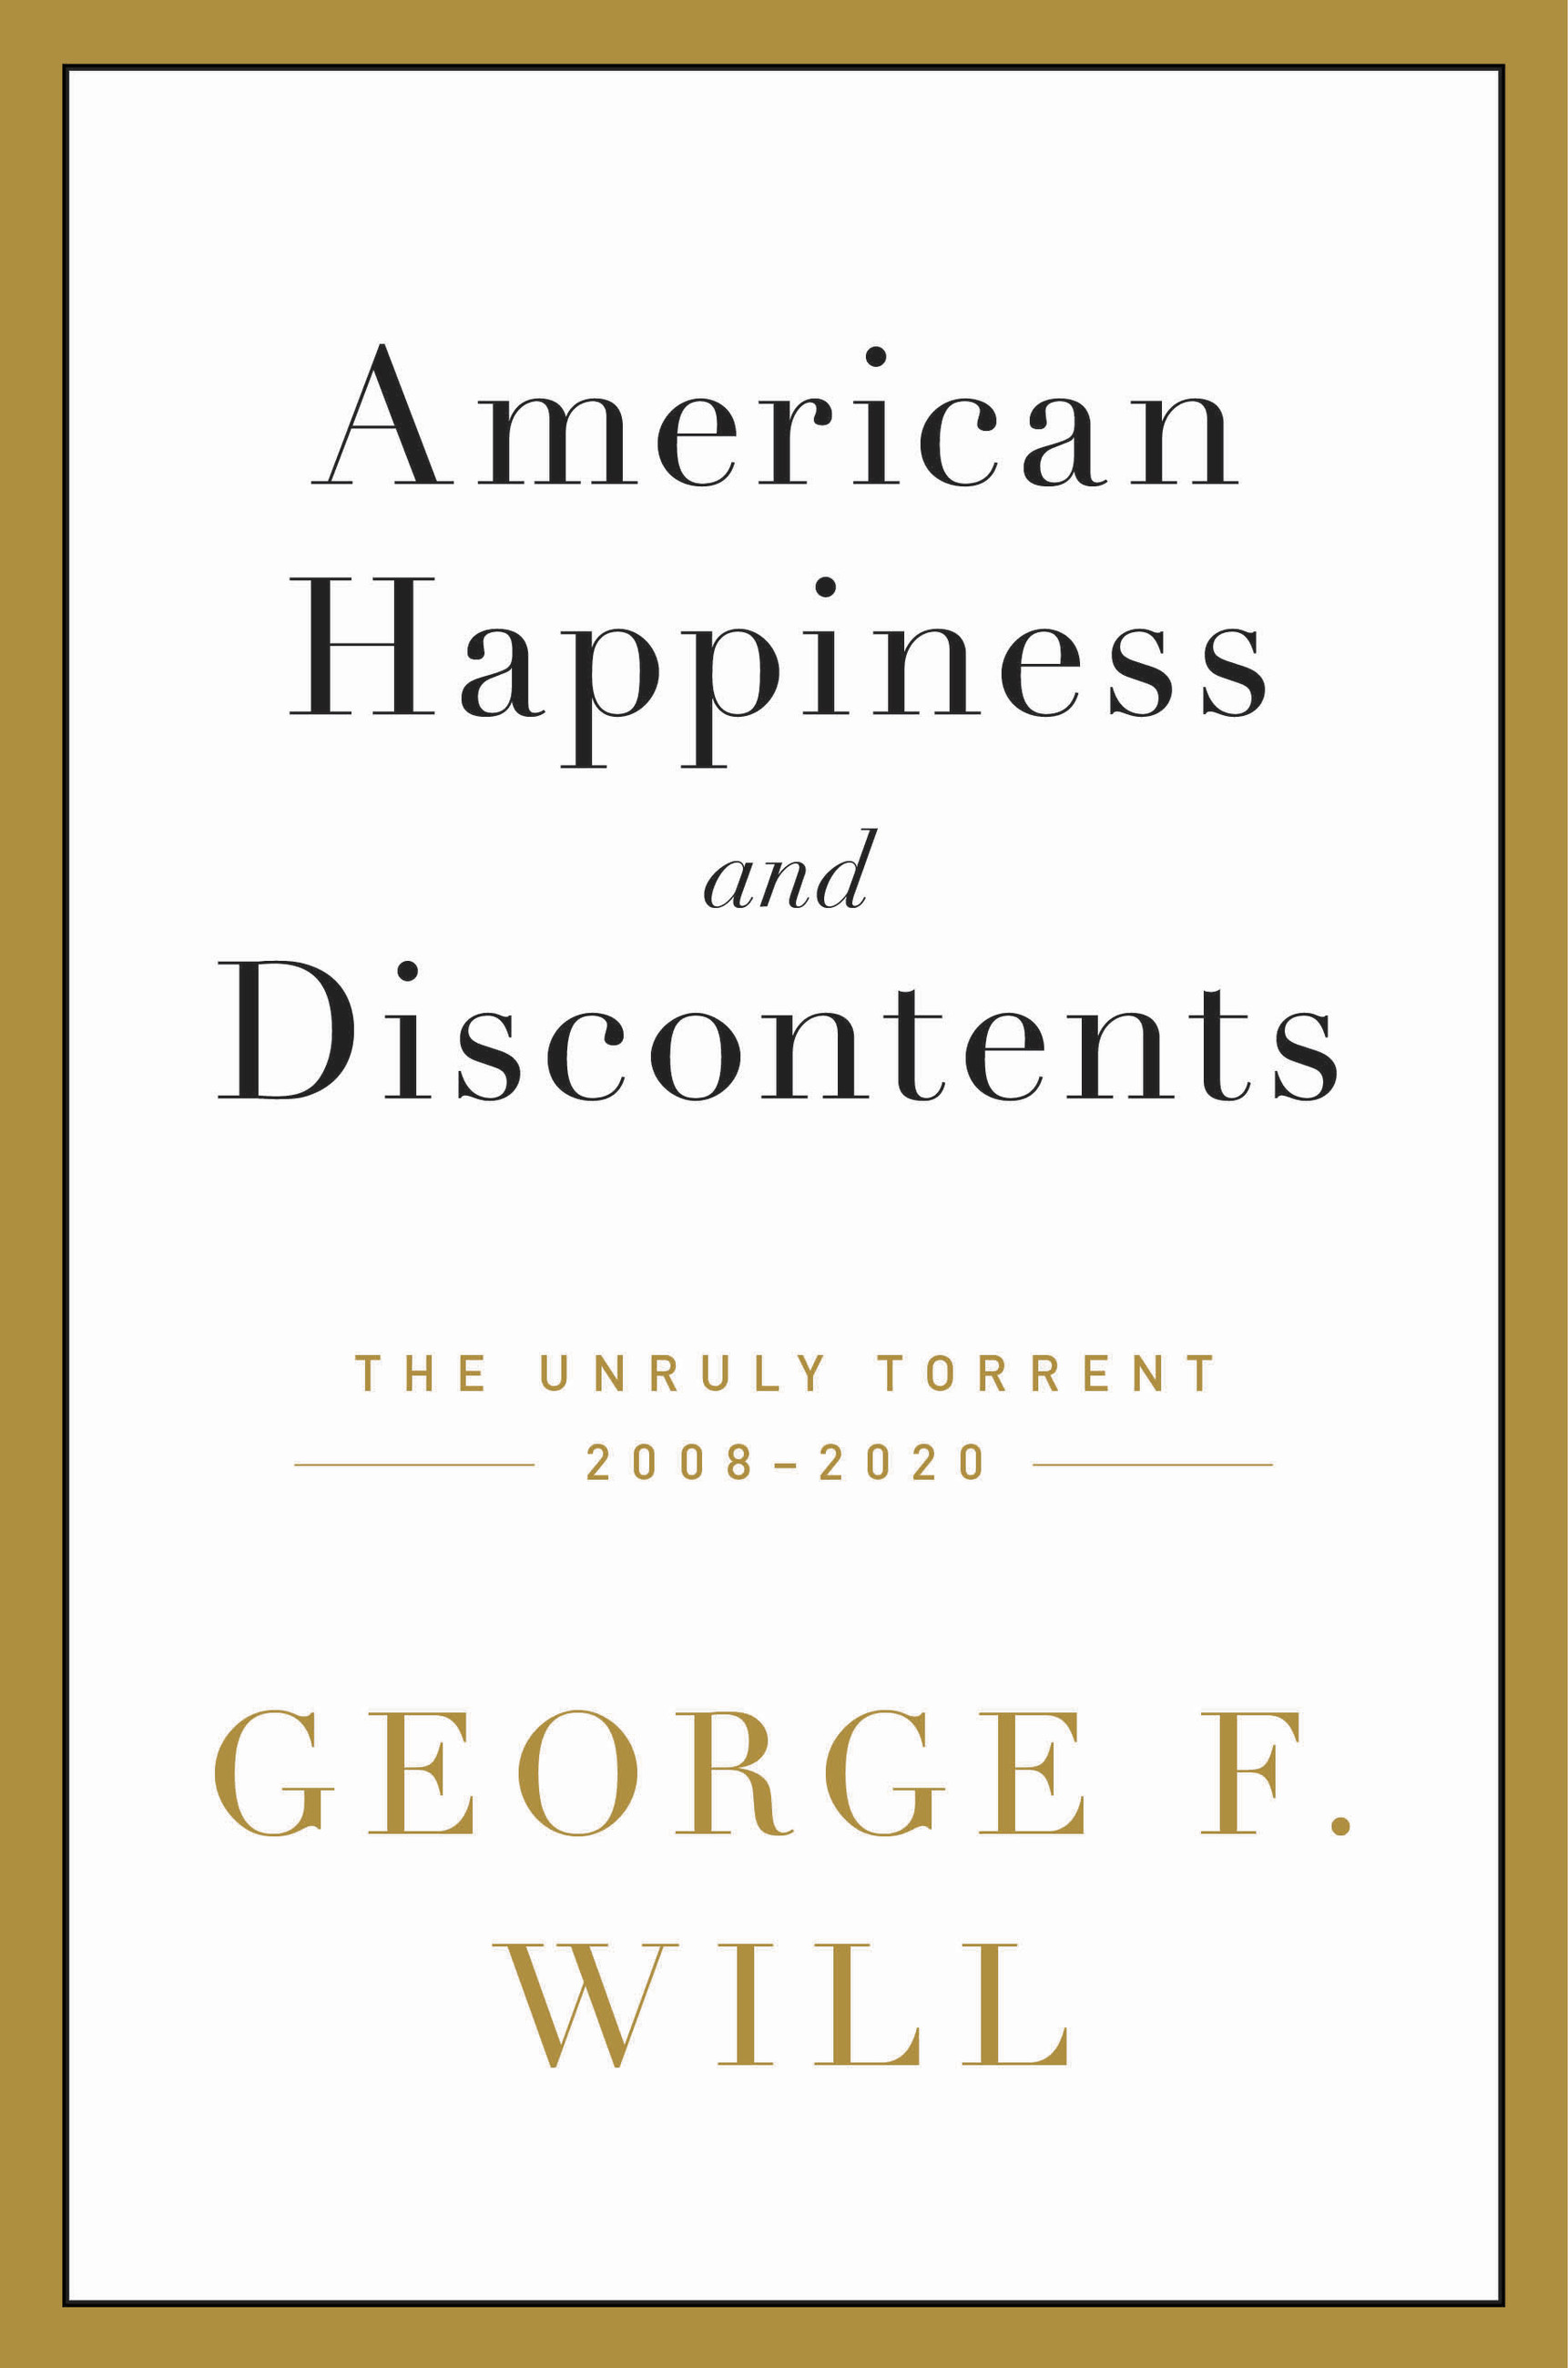 American Happiness and Discontents The Unruly Torrent, 2008-2020